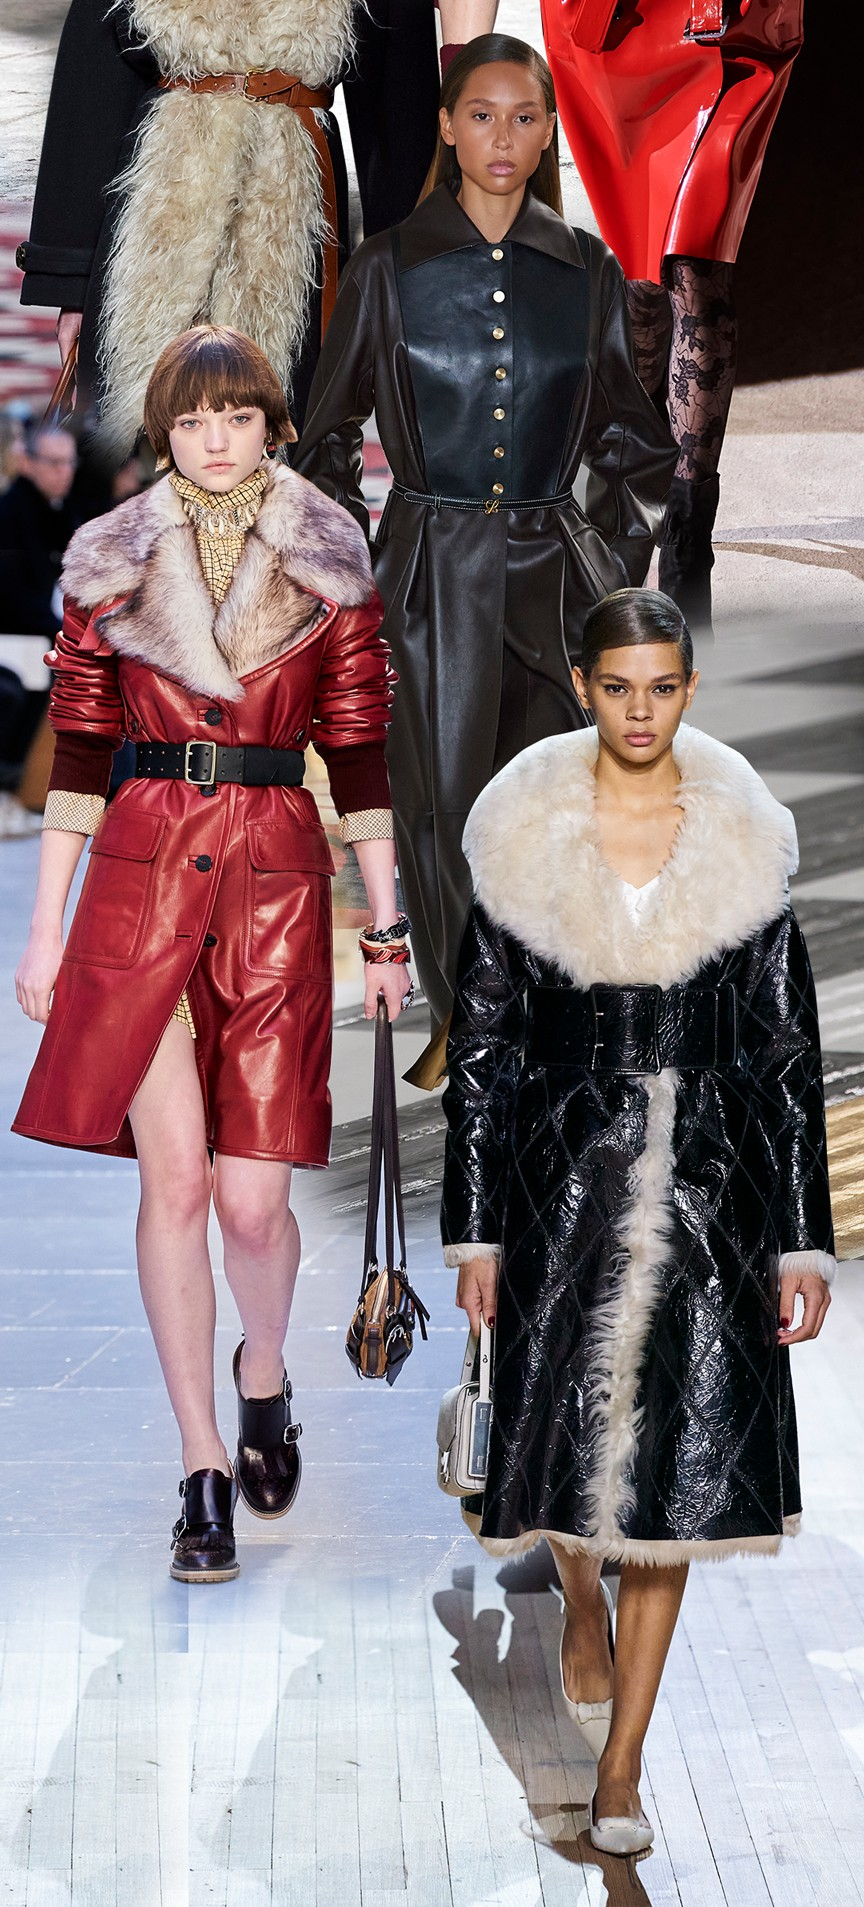 The Hottest And Most Coveted Fashion Trends From The Fall 2020 Runways (3) fashion trend The Hottest And Most Coveted Fashion Trends From The Fall 2020 Runways The Hottest And Most Coveted Fashion Trends From The Fall 2020 Runways 3